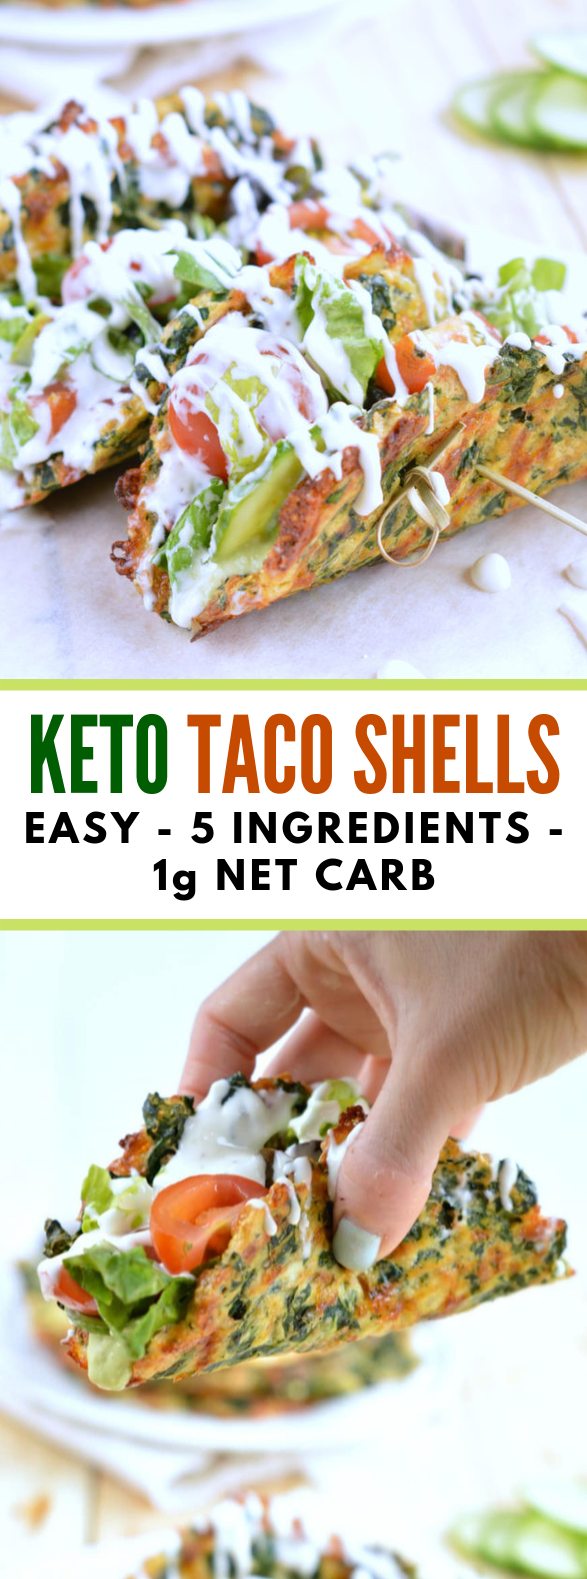 SPINACH CHEESE TACO SHELLS KETO + LOW CARB #healhty #diet #ketogenic #lowcarb #aip